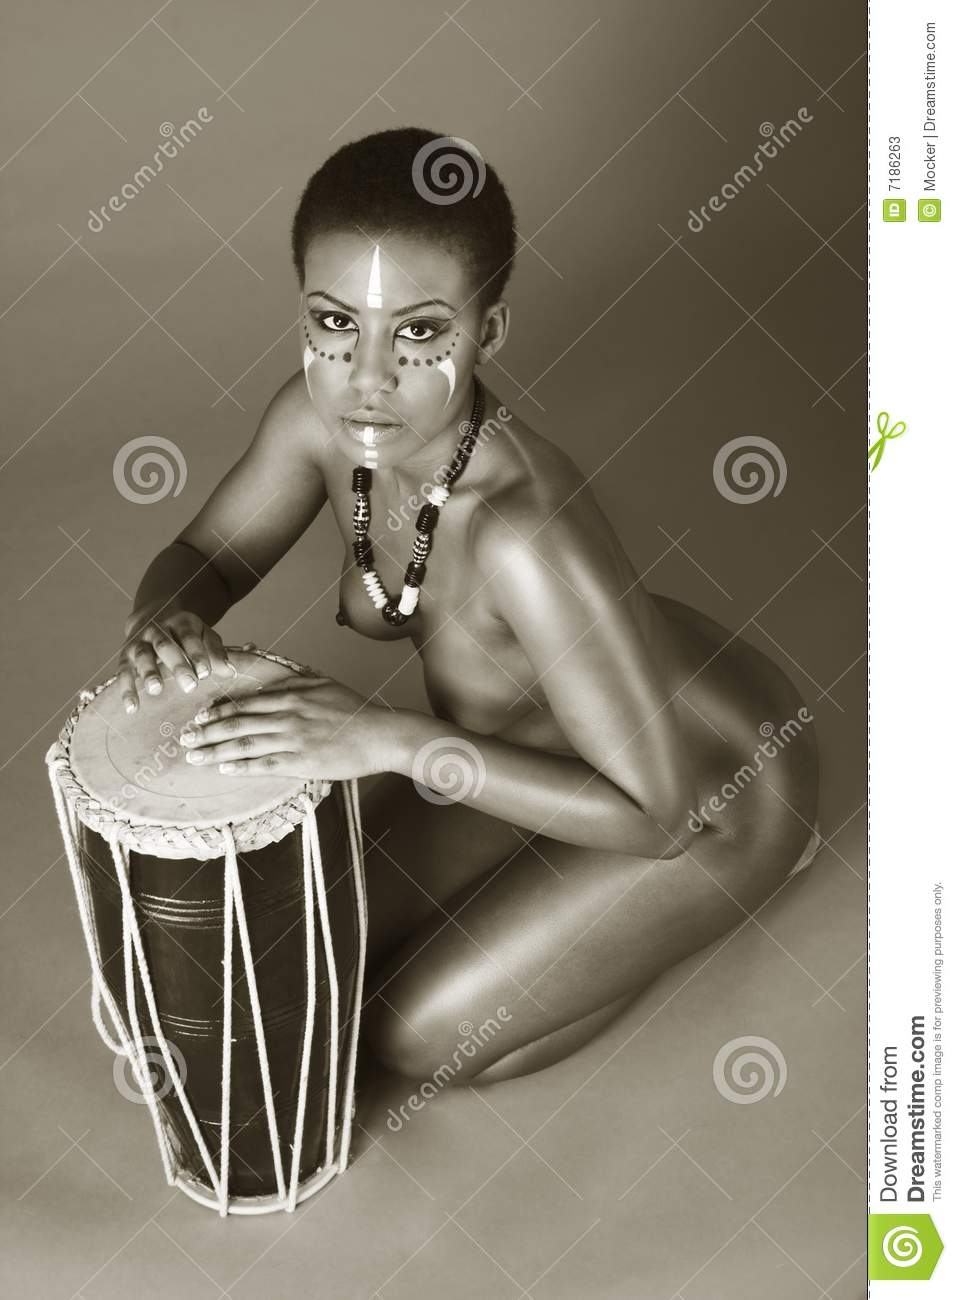 African american drums indigenous nude woman